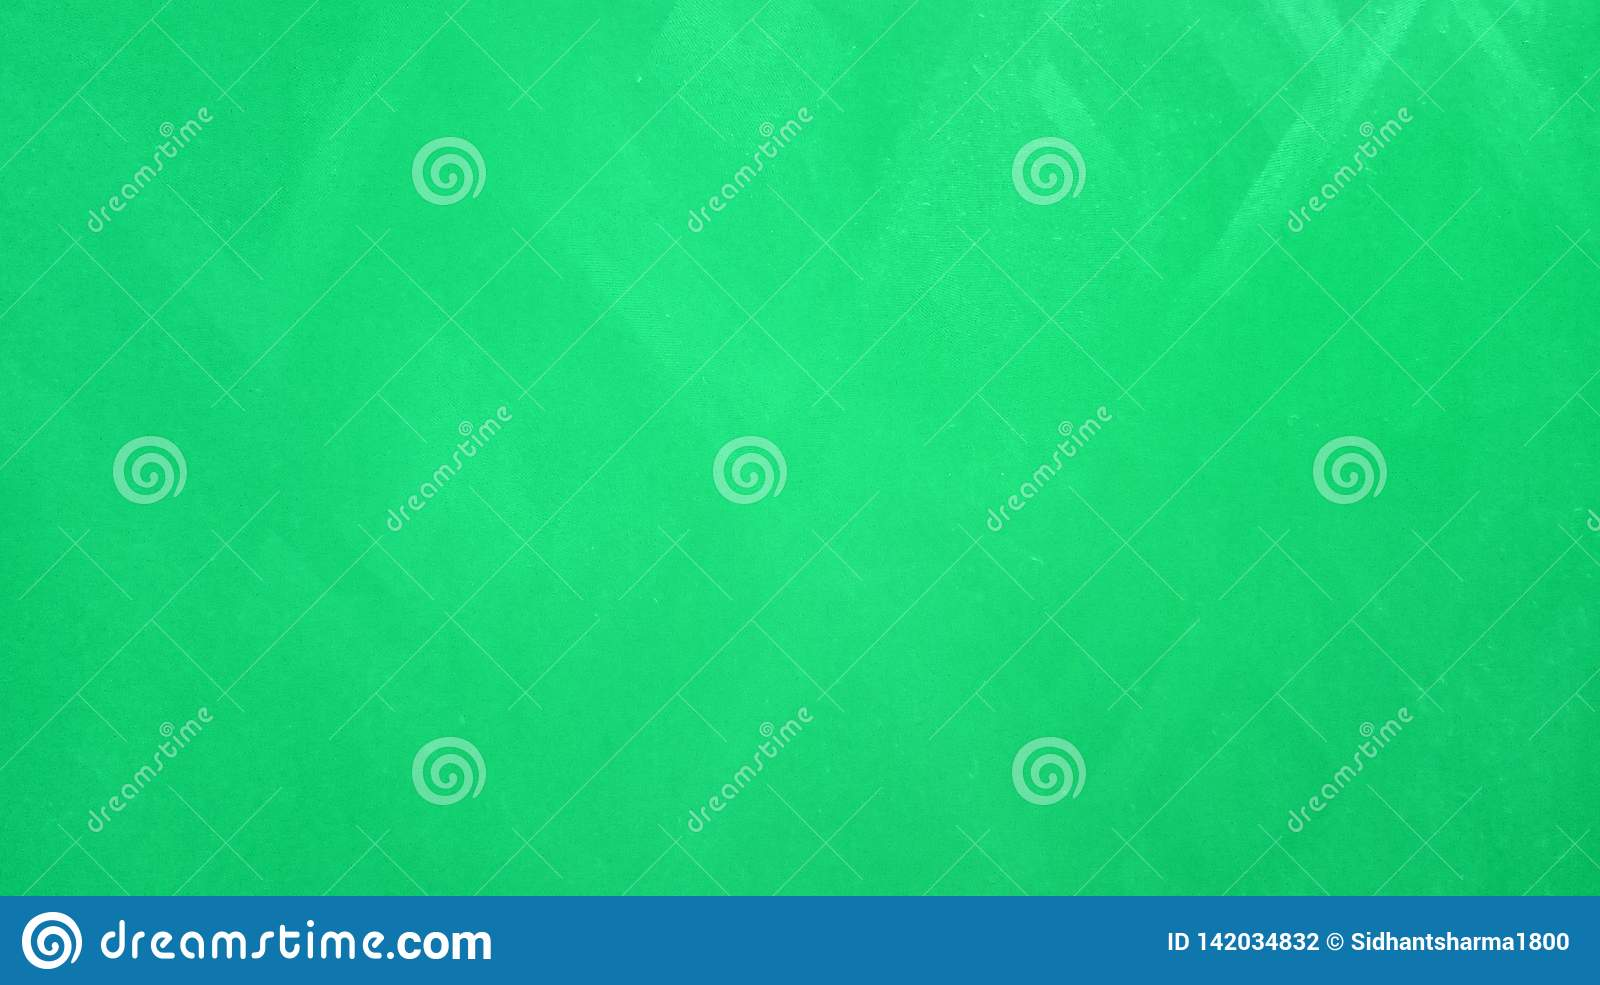 Abstract Light green paper smooth triangles texture reflected on paper background wallpaper